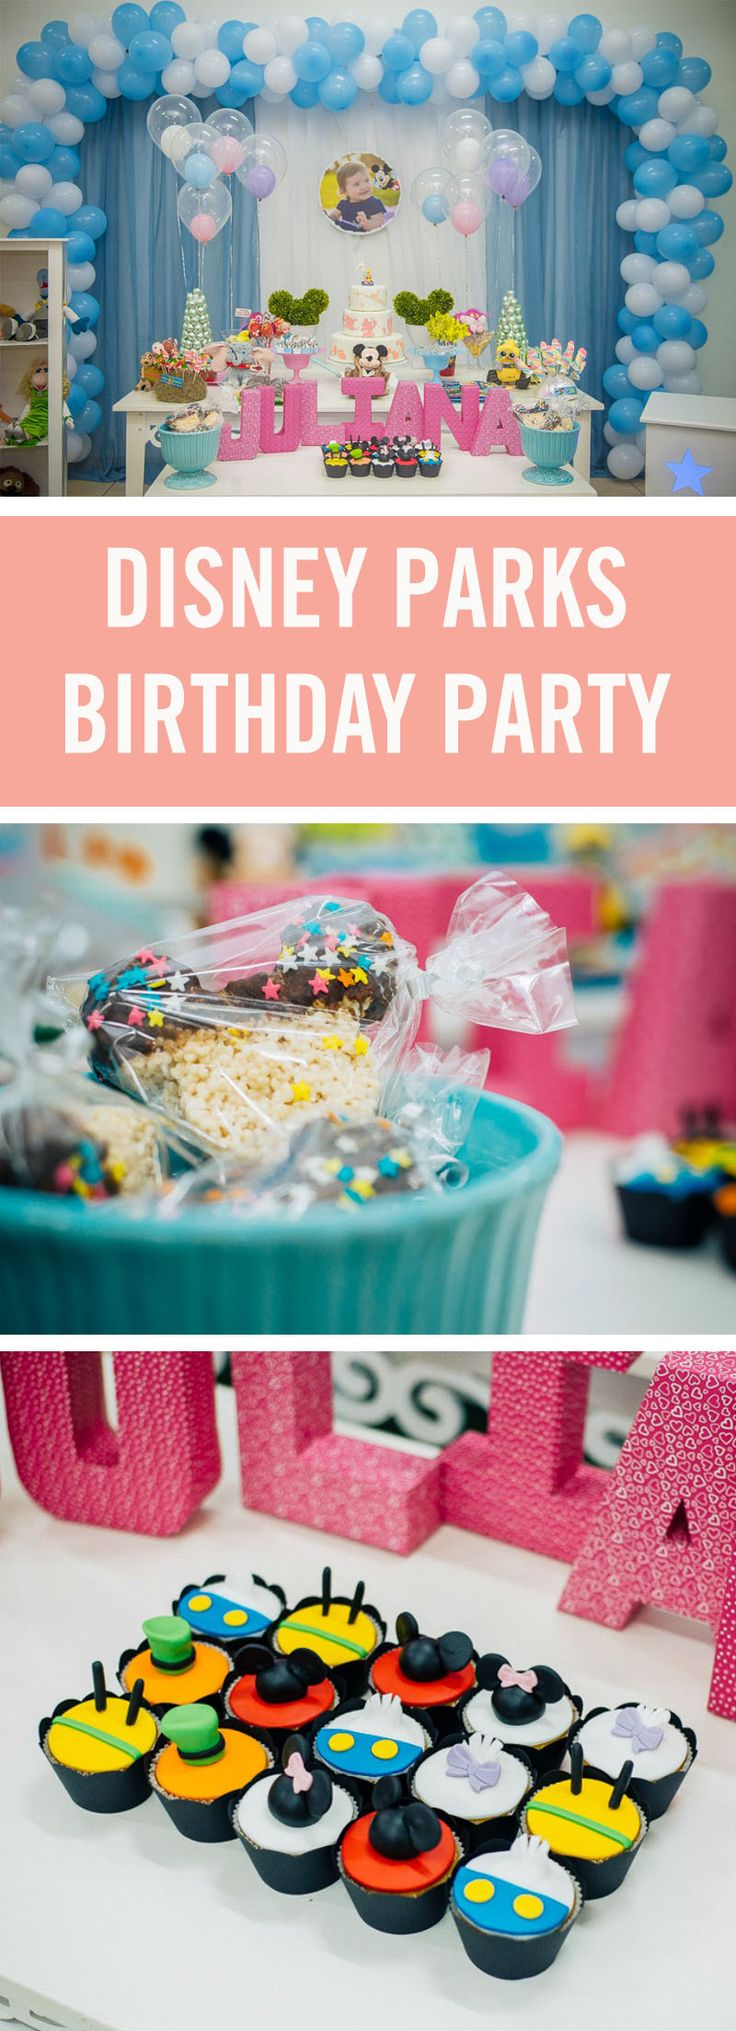 Can't figure out how to integrate all of your favorite Disney themes into one incredible kids birthday party? Why not throw a DIY Disney Parks party? From Mickey to Muppets, this party has it all.